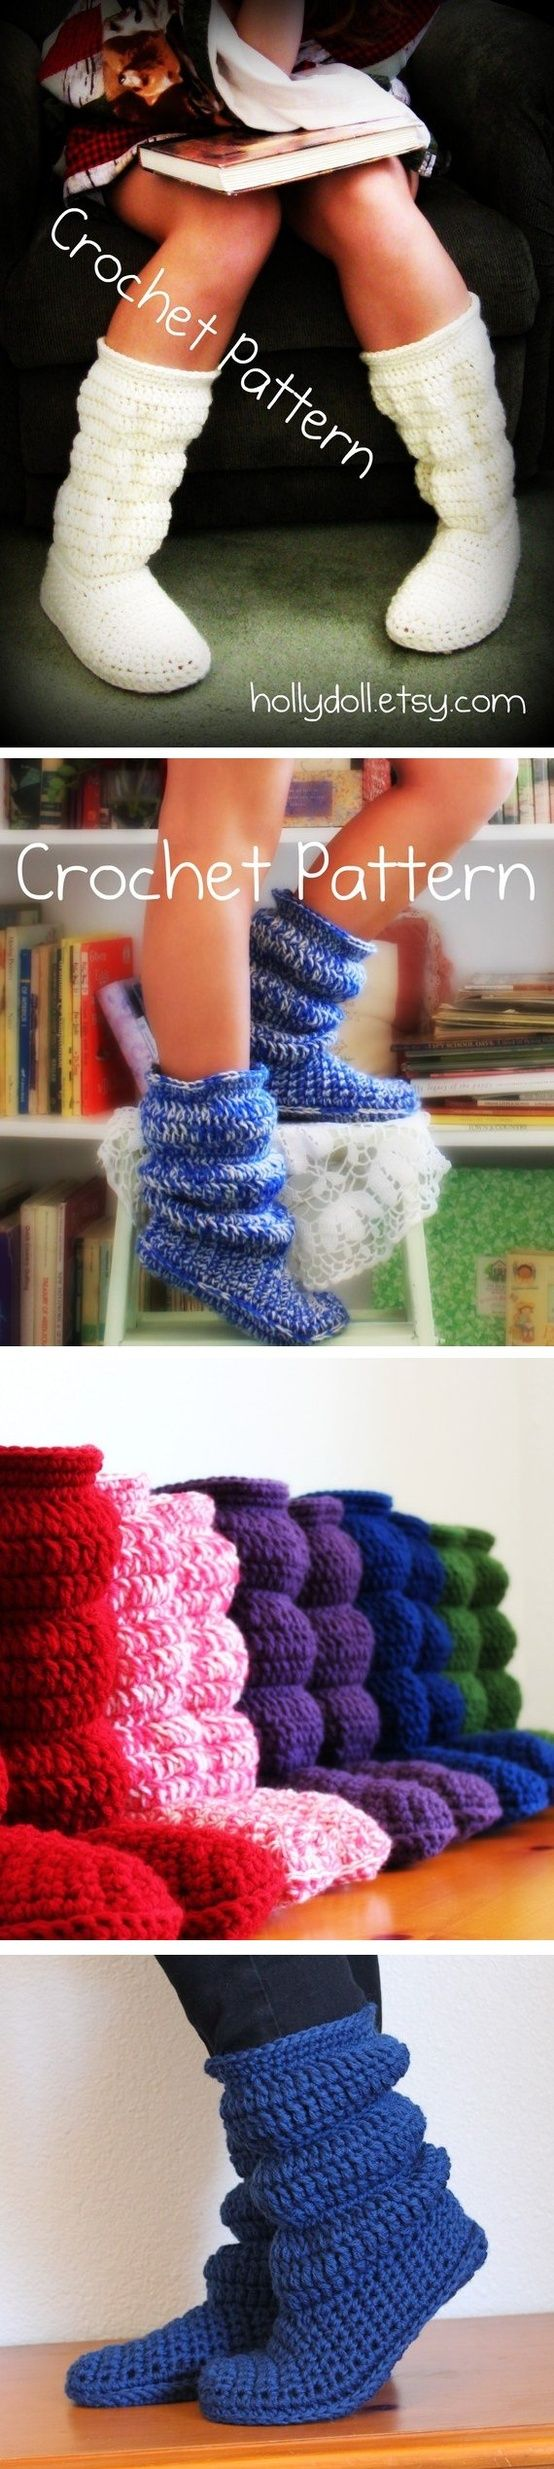 Hollydoll crocheted boot slippers inspiration my beautiful hollydoll crocheted boot slippers inspiration my beautiful future babies are going to be styli pinterest crochet boots and crochet bankloansurffo Image collections